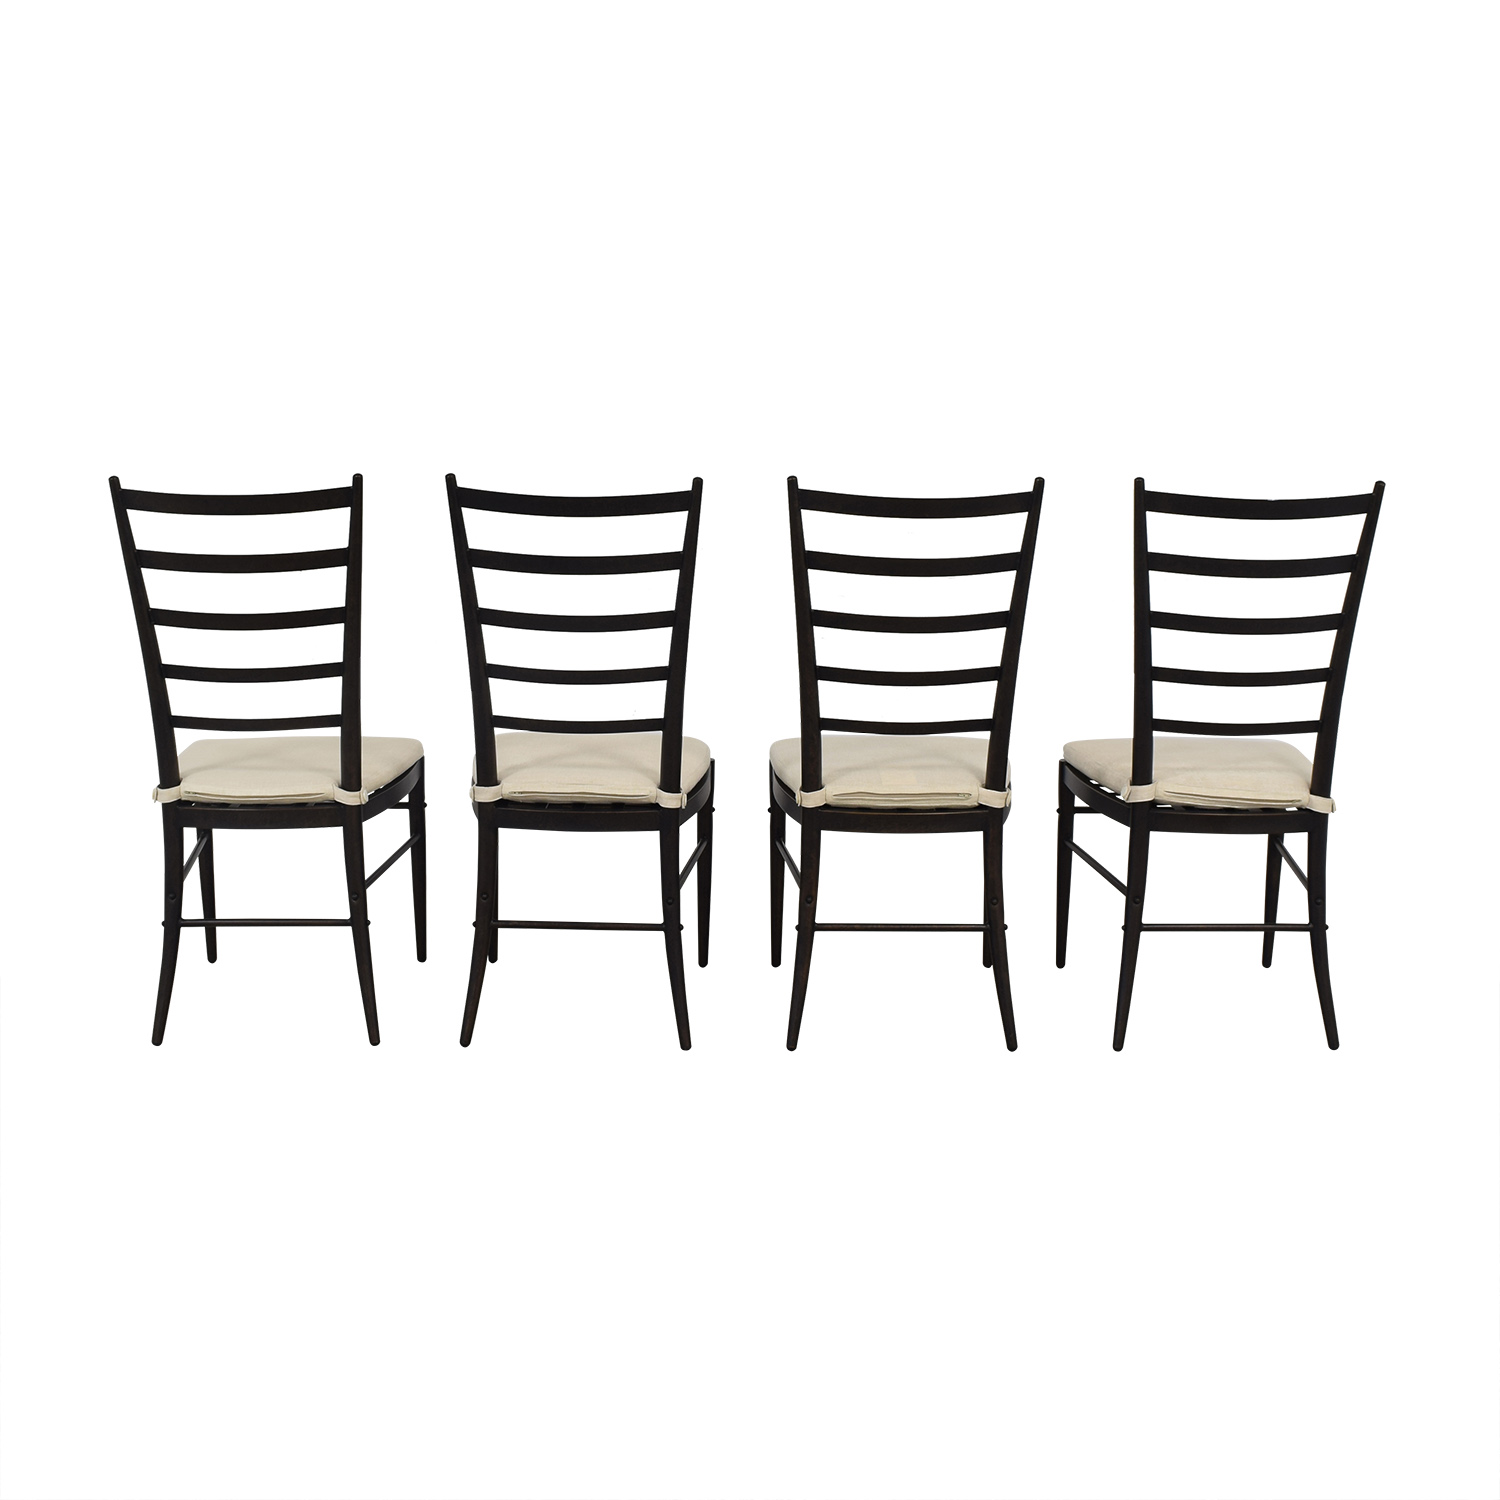 Crate & Barrel Crate & Barrel Ladder Back Dining Chairs beige and black